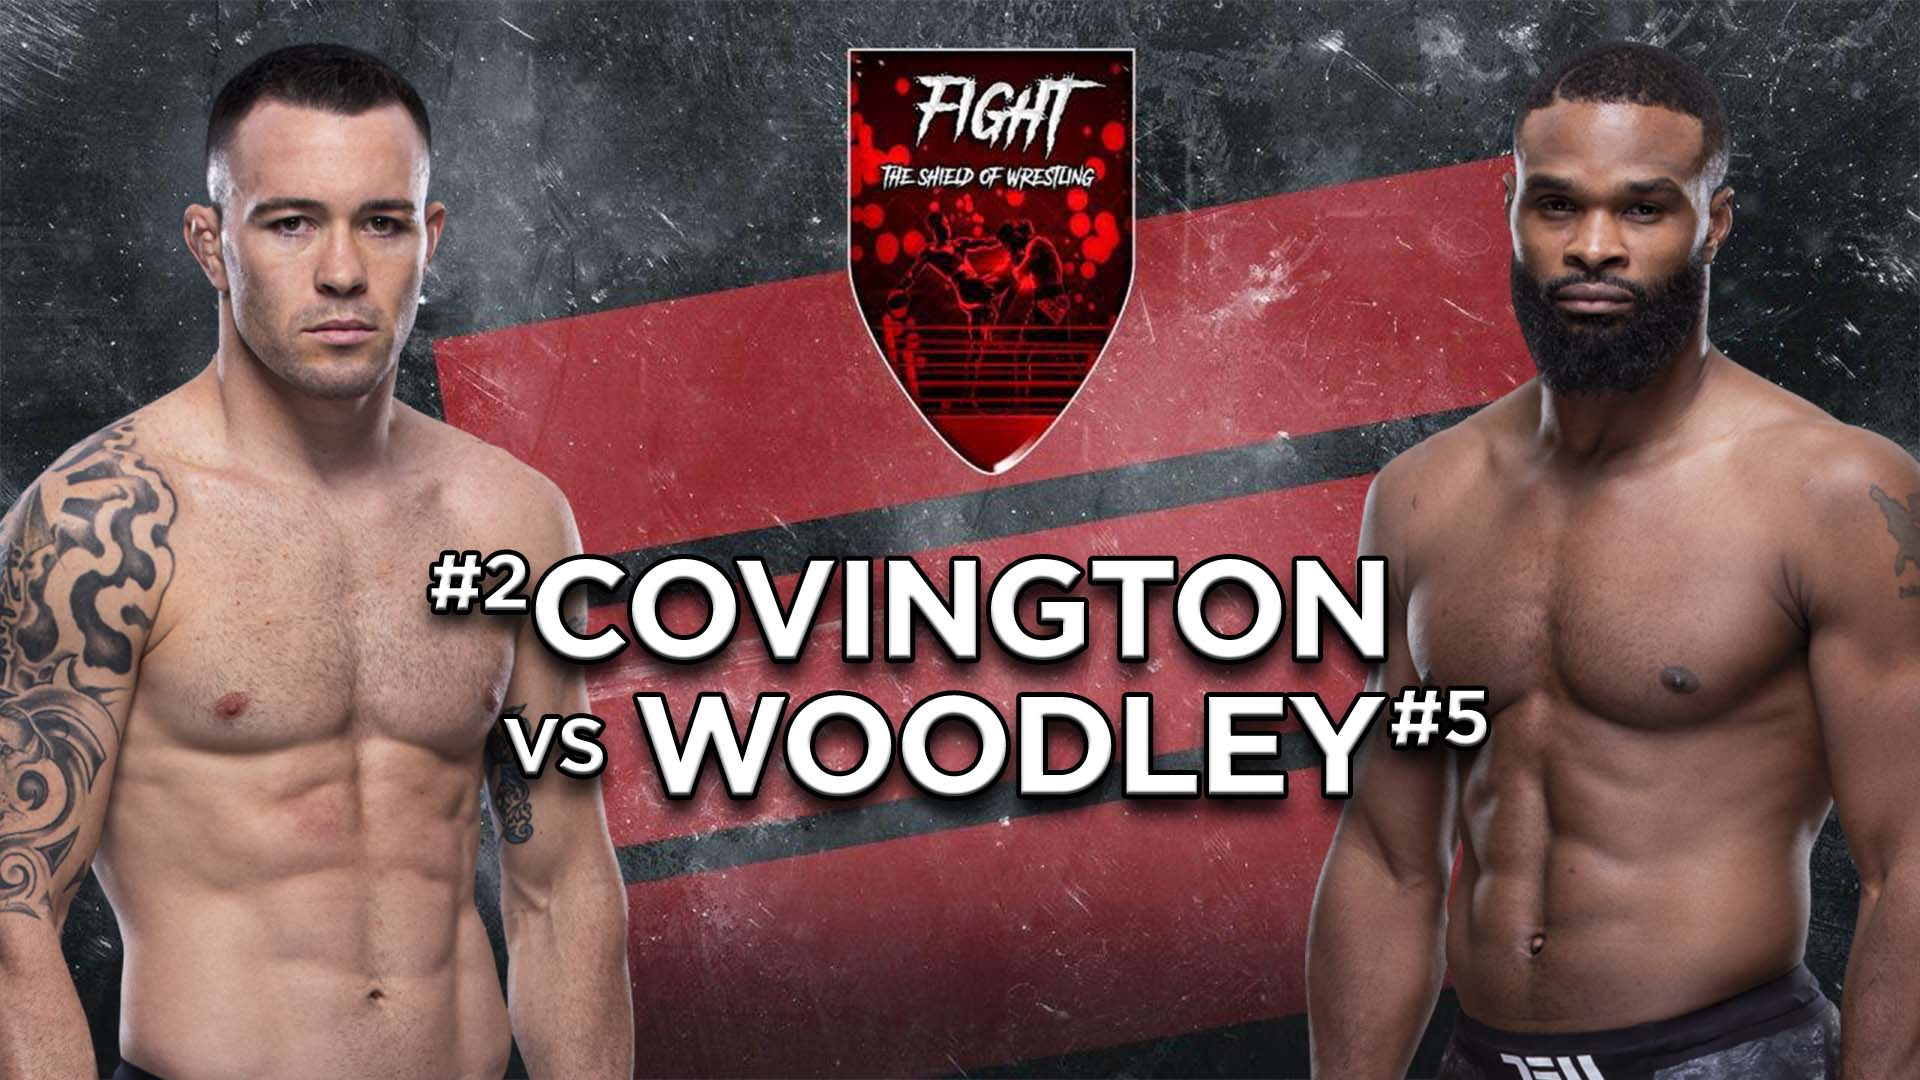 Covington vs Woodley: chi ha vinto il match?